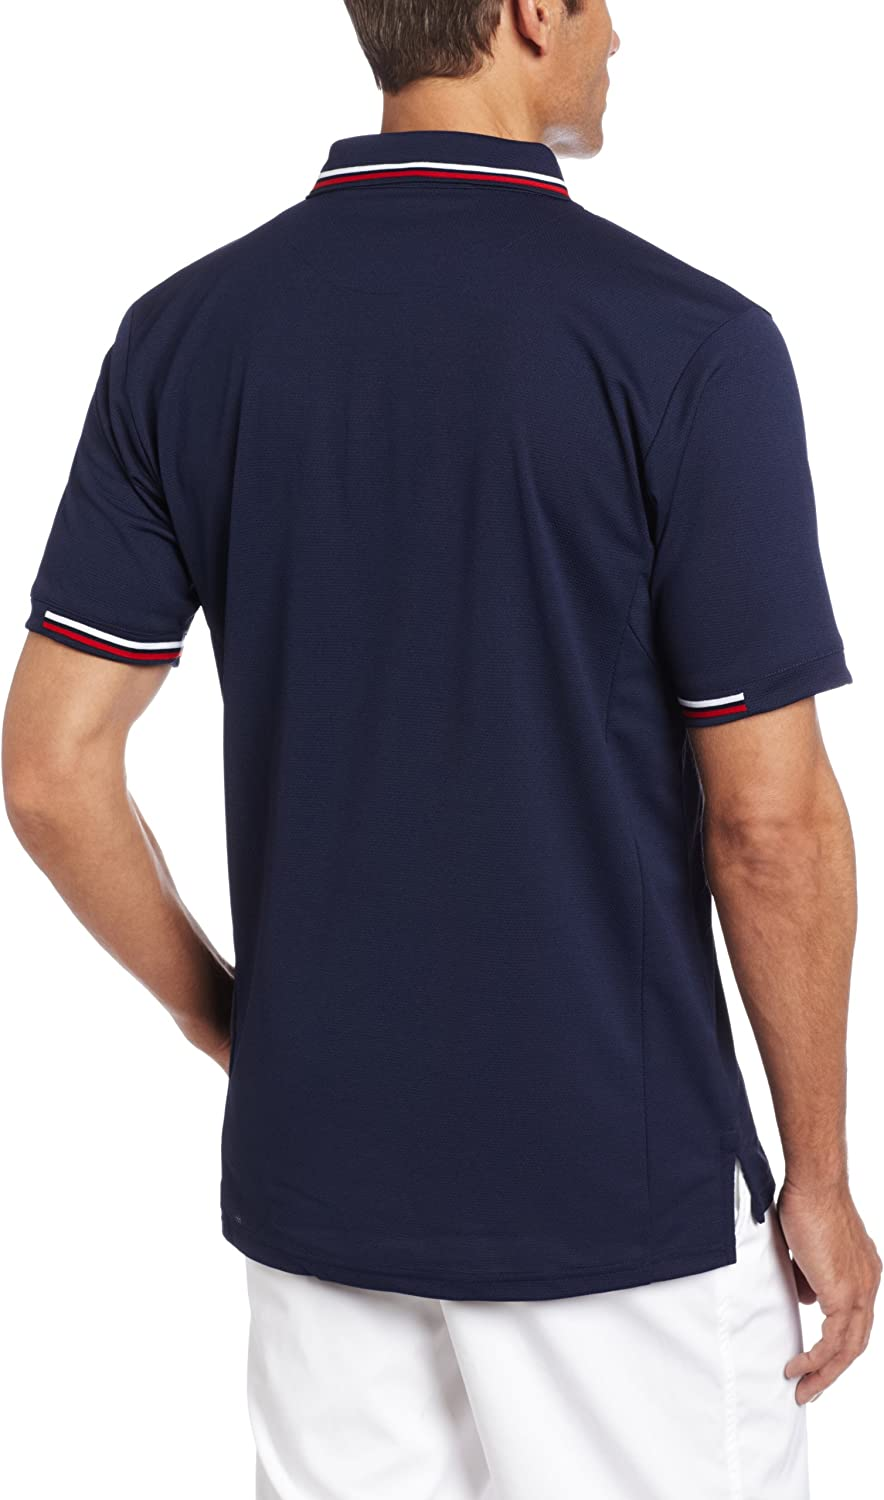 Majestic Iu20 Umpire Polo Shirt